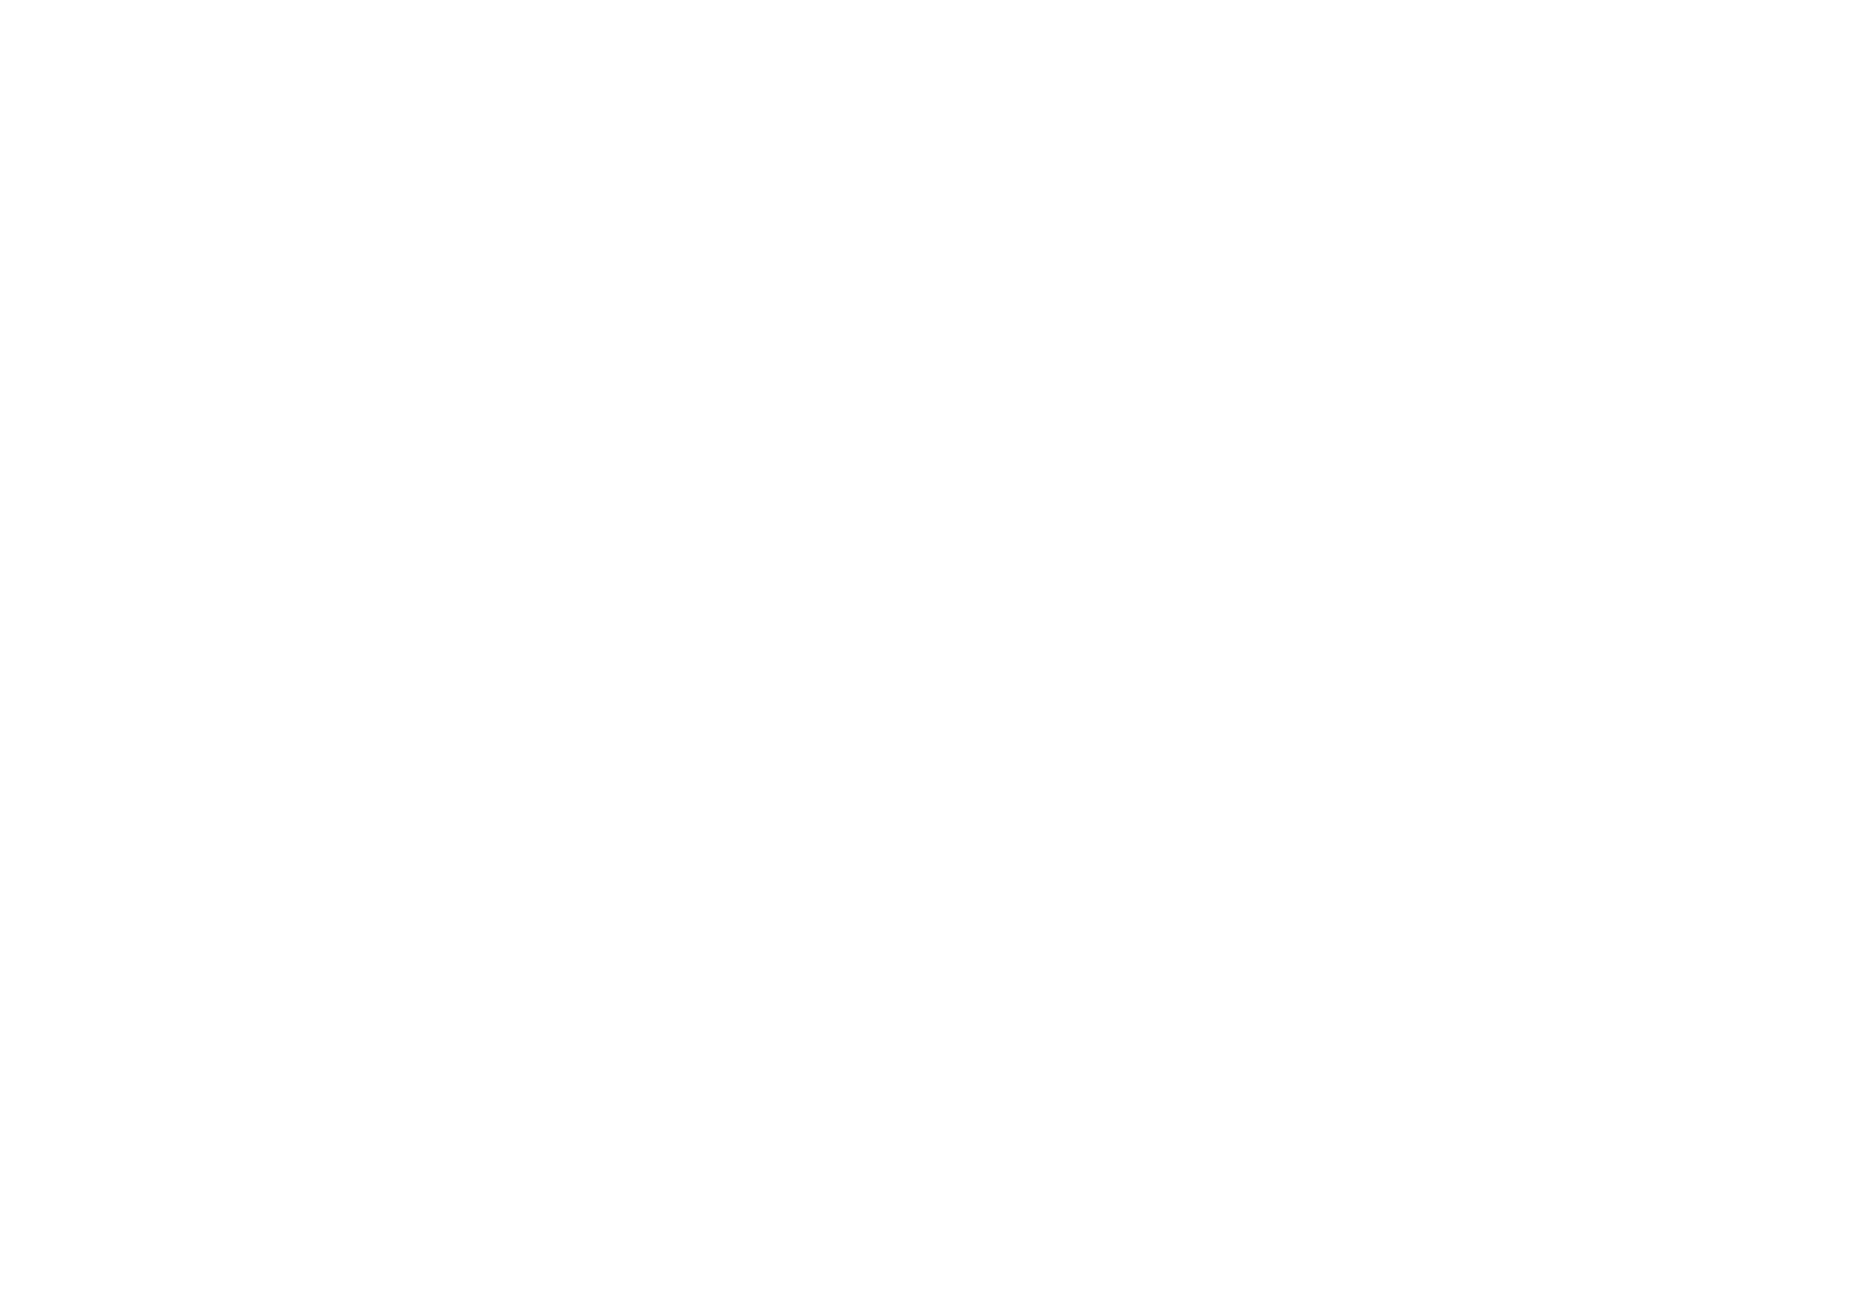 salesforce-logo-white